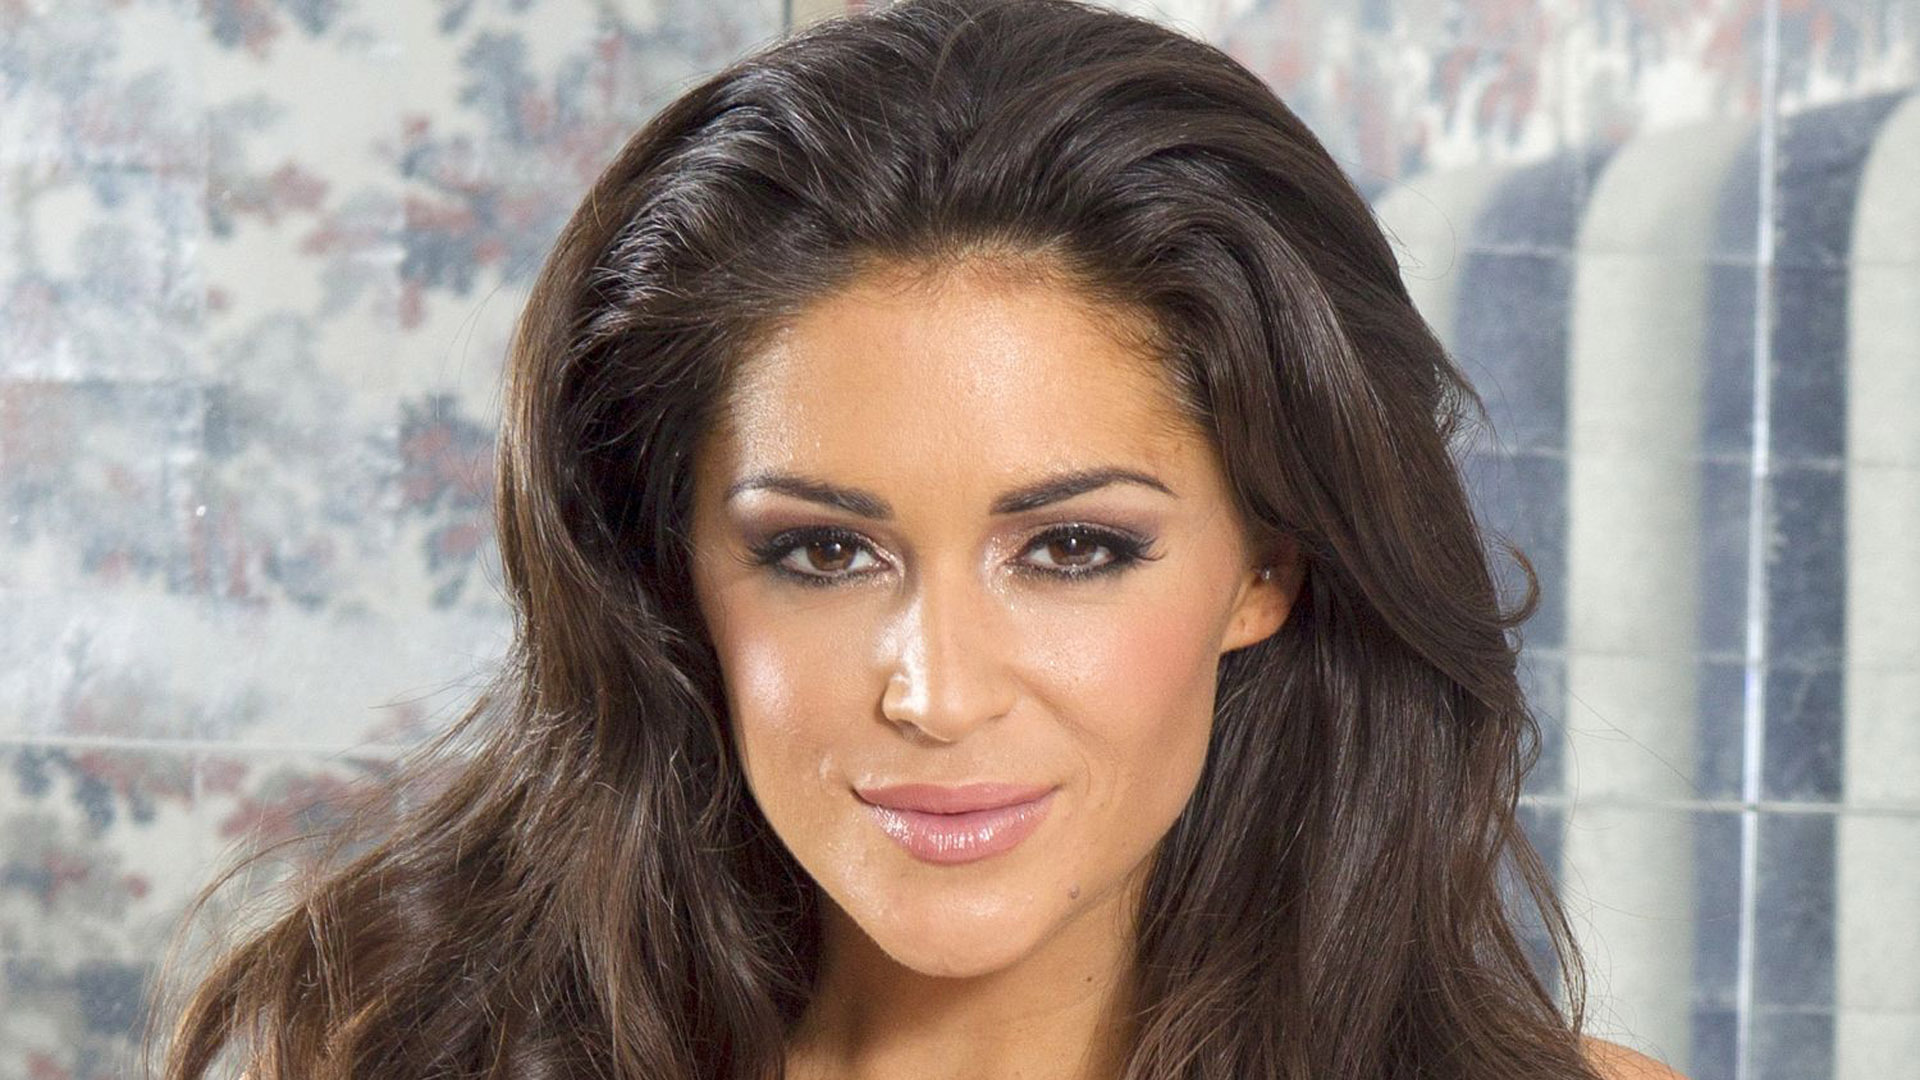 Casey Batchelor